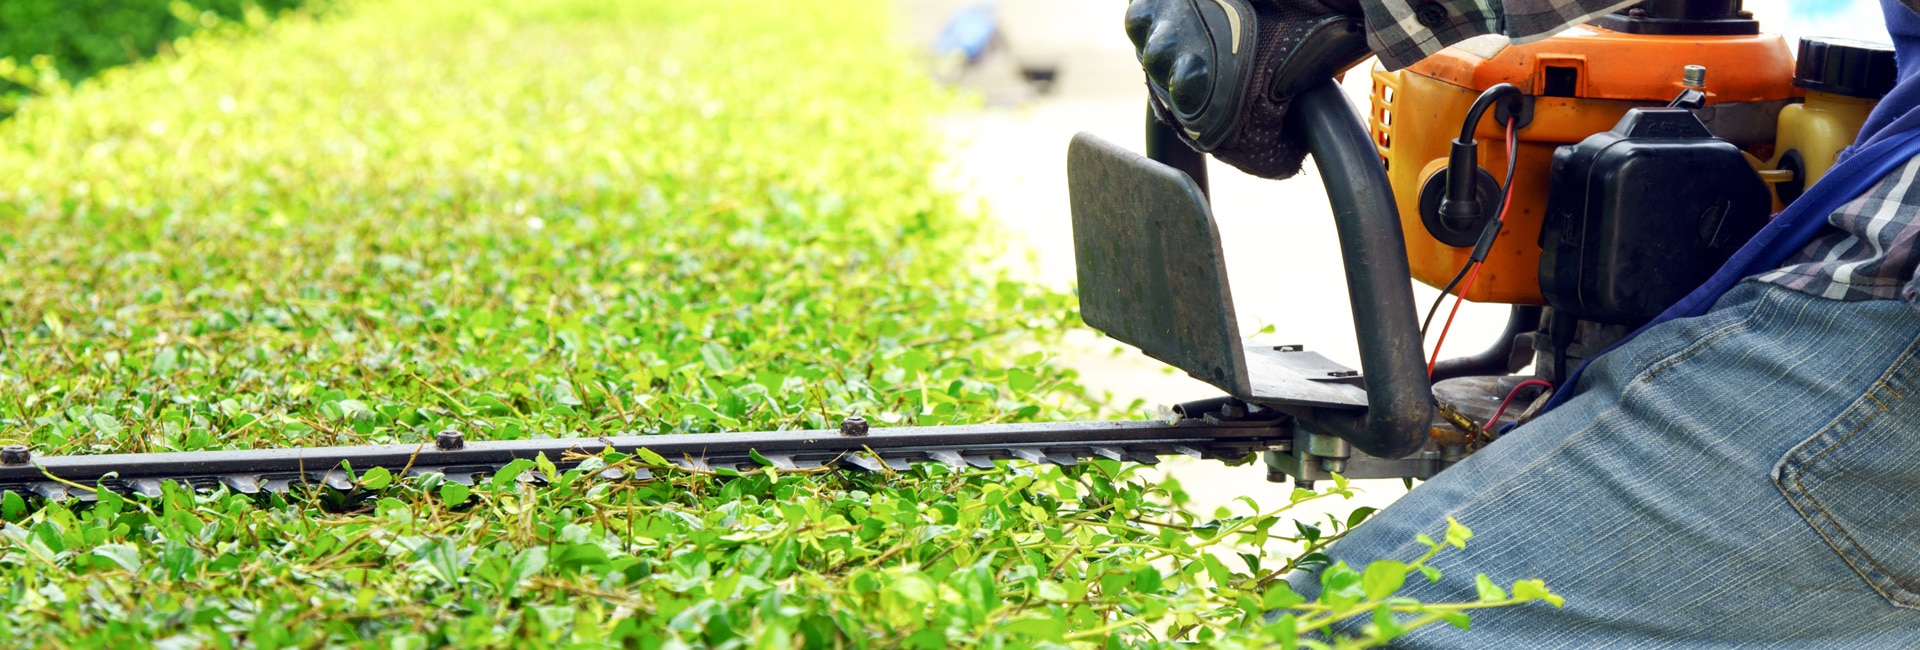 Hedge Trimmer Features to Consider - Lawn